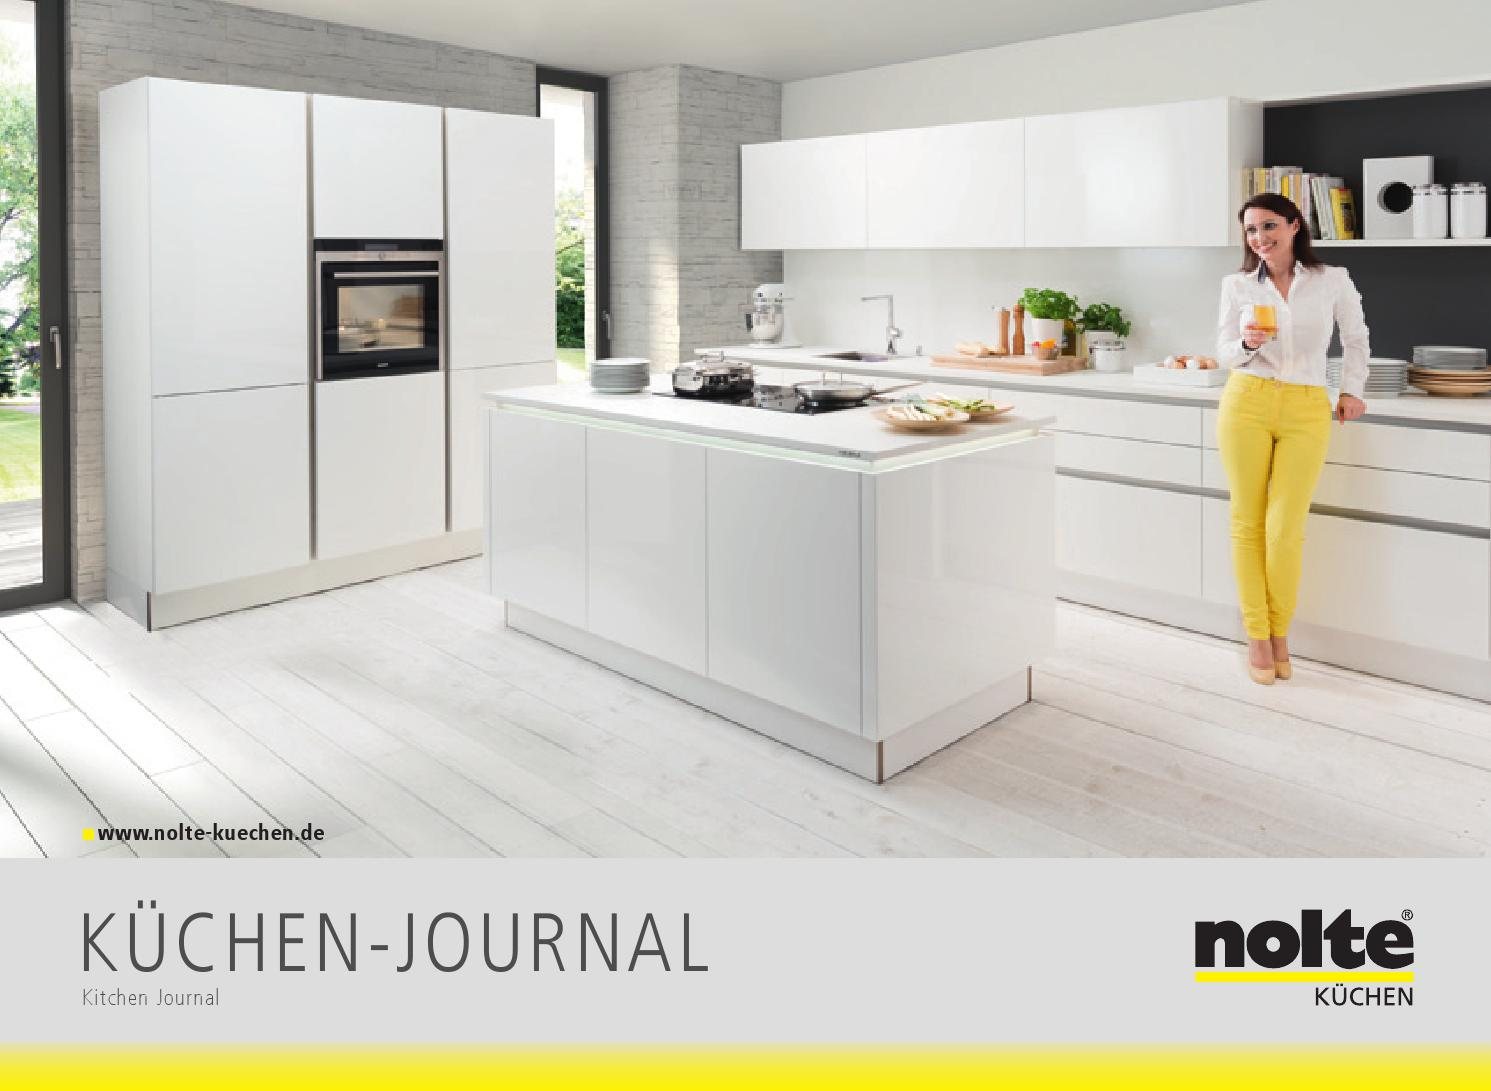 Meyer Nolte Kuchen Journal 2015 By Perspektive Werbeagentur Issuu